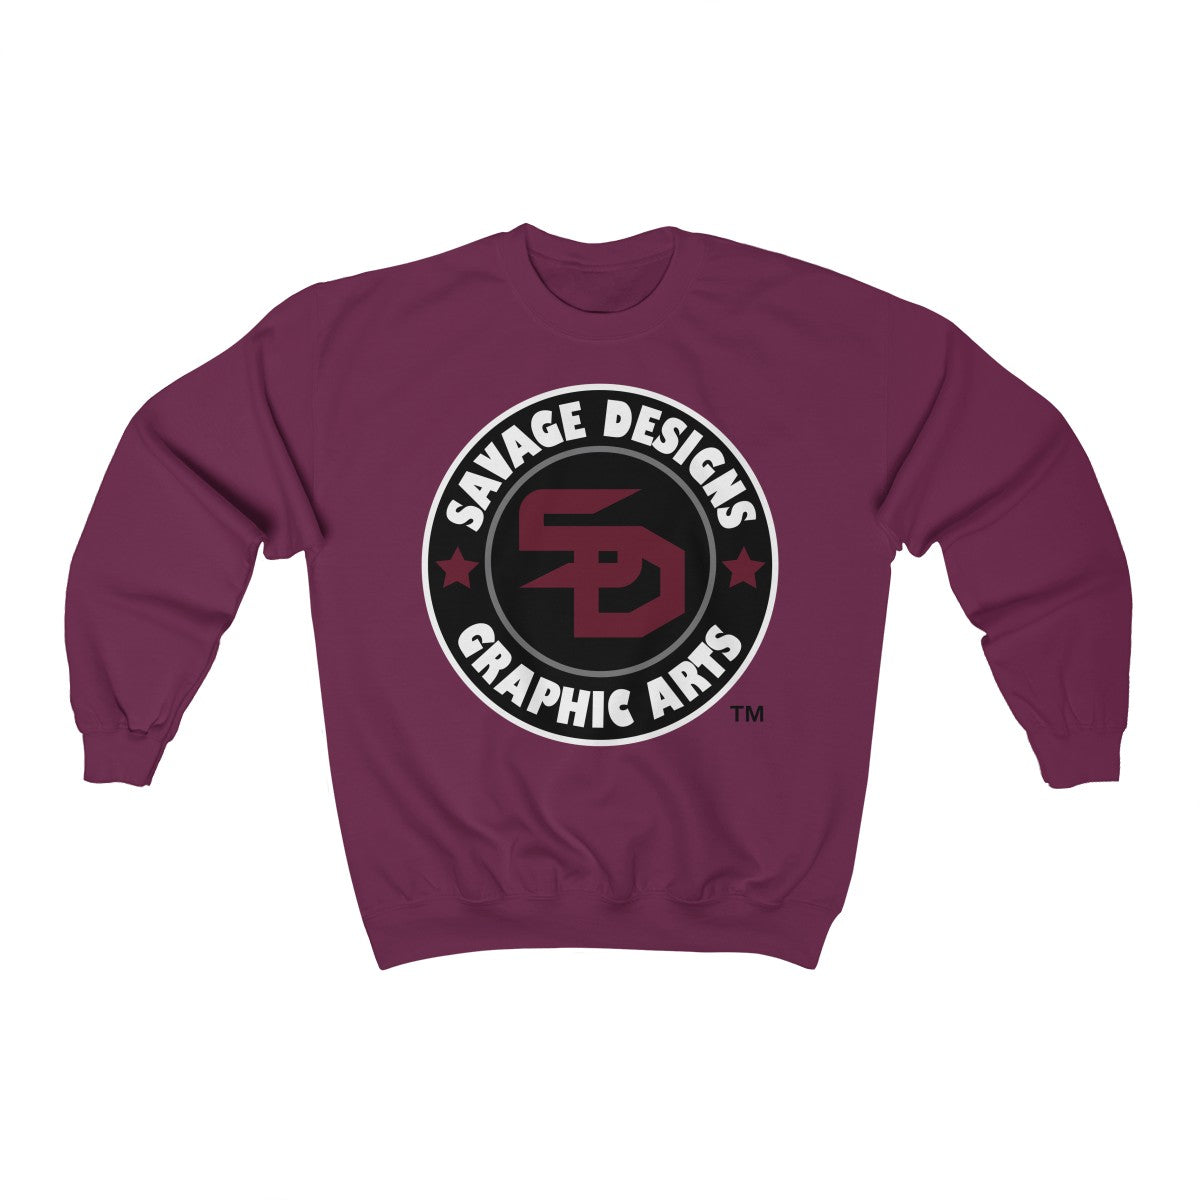 Savage Designs Symbol Patch Maroon/Black/White Sweatshirt- 3 Colors